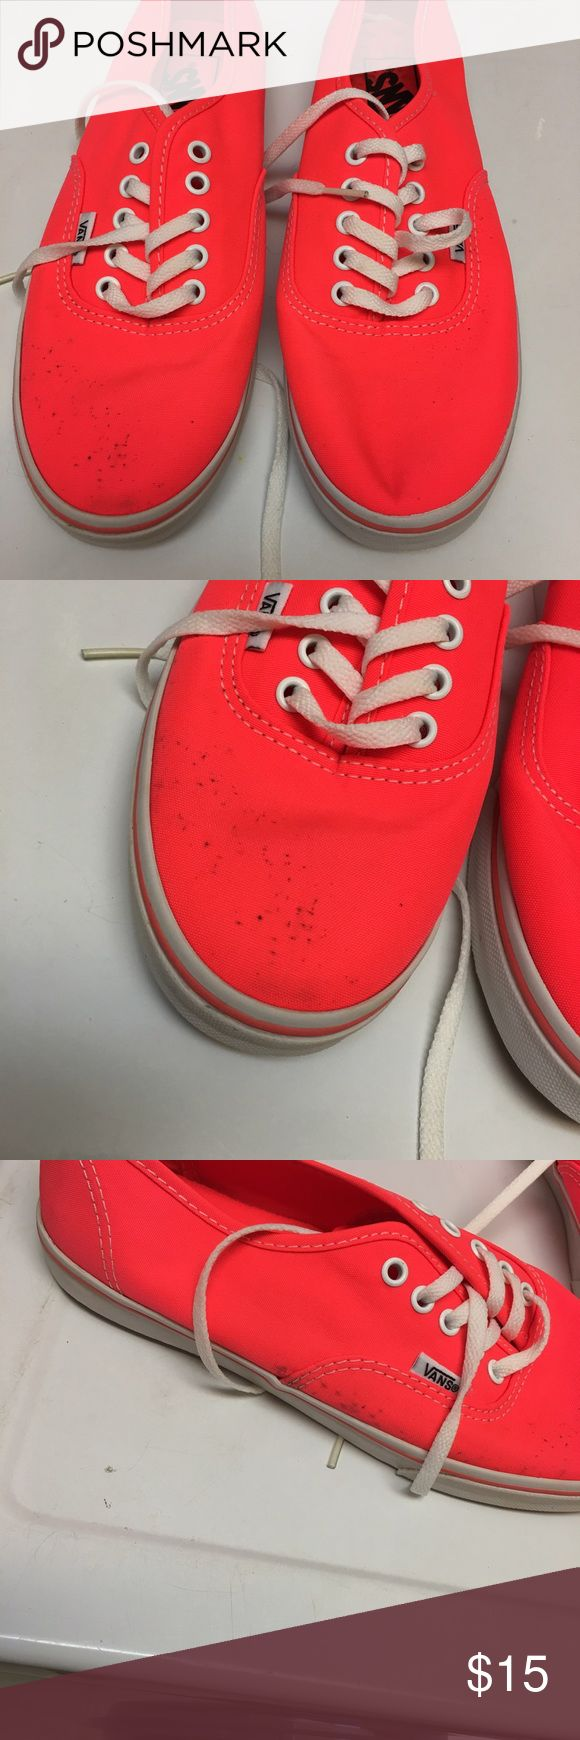 Coral Vans Used coral vans have some dark spots on front and side of one shoe as seen in the pictures. Not perfect condition but still lots of love left in them Vans Shoes Sneakers